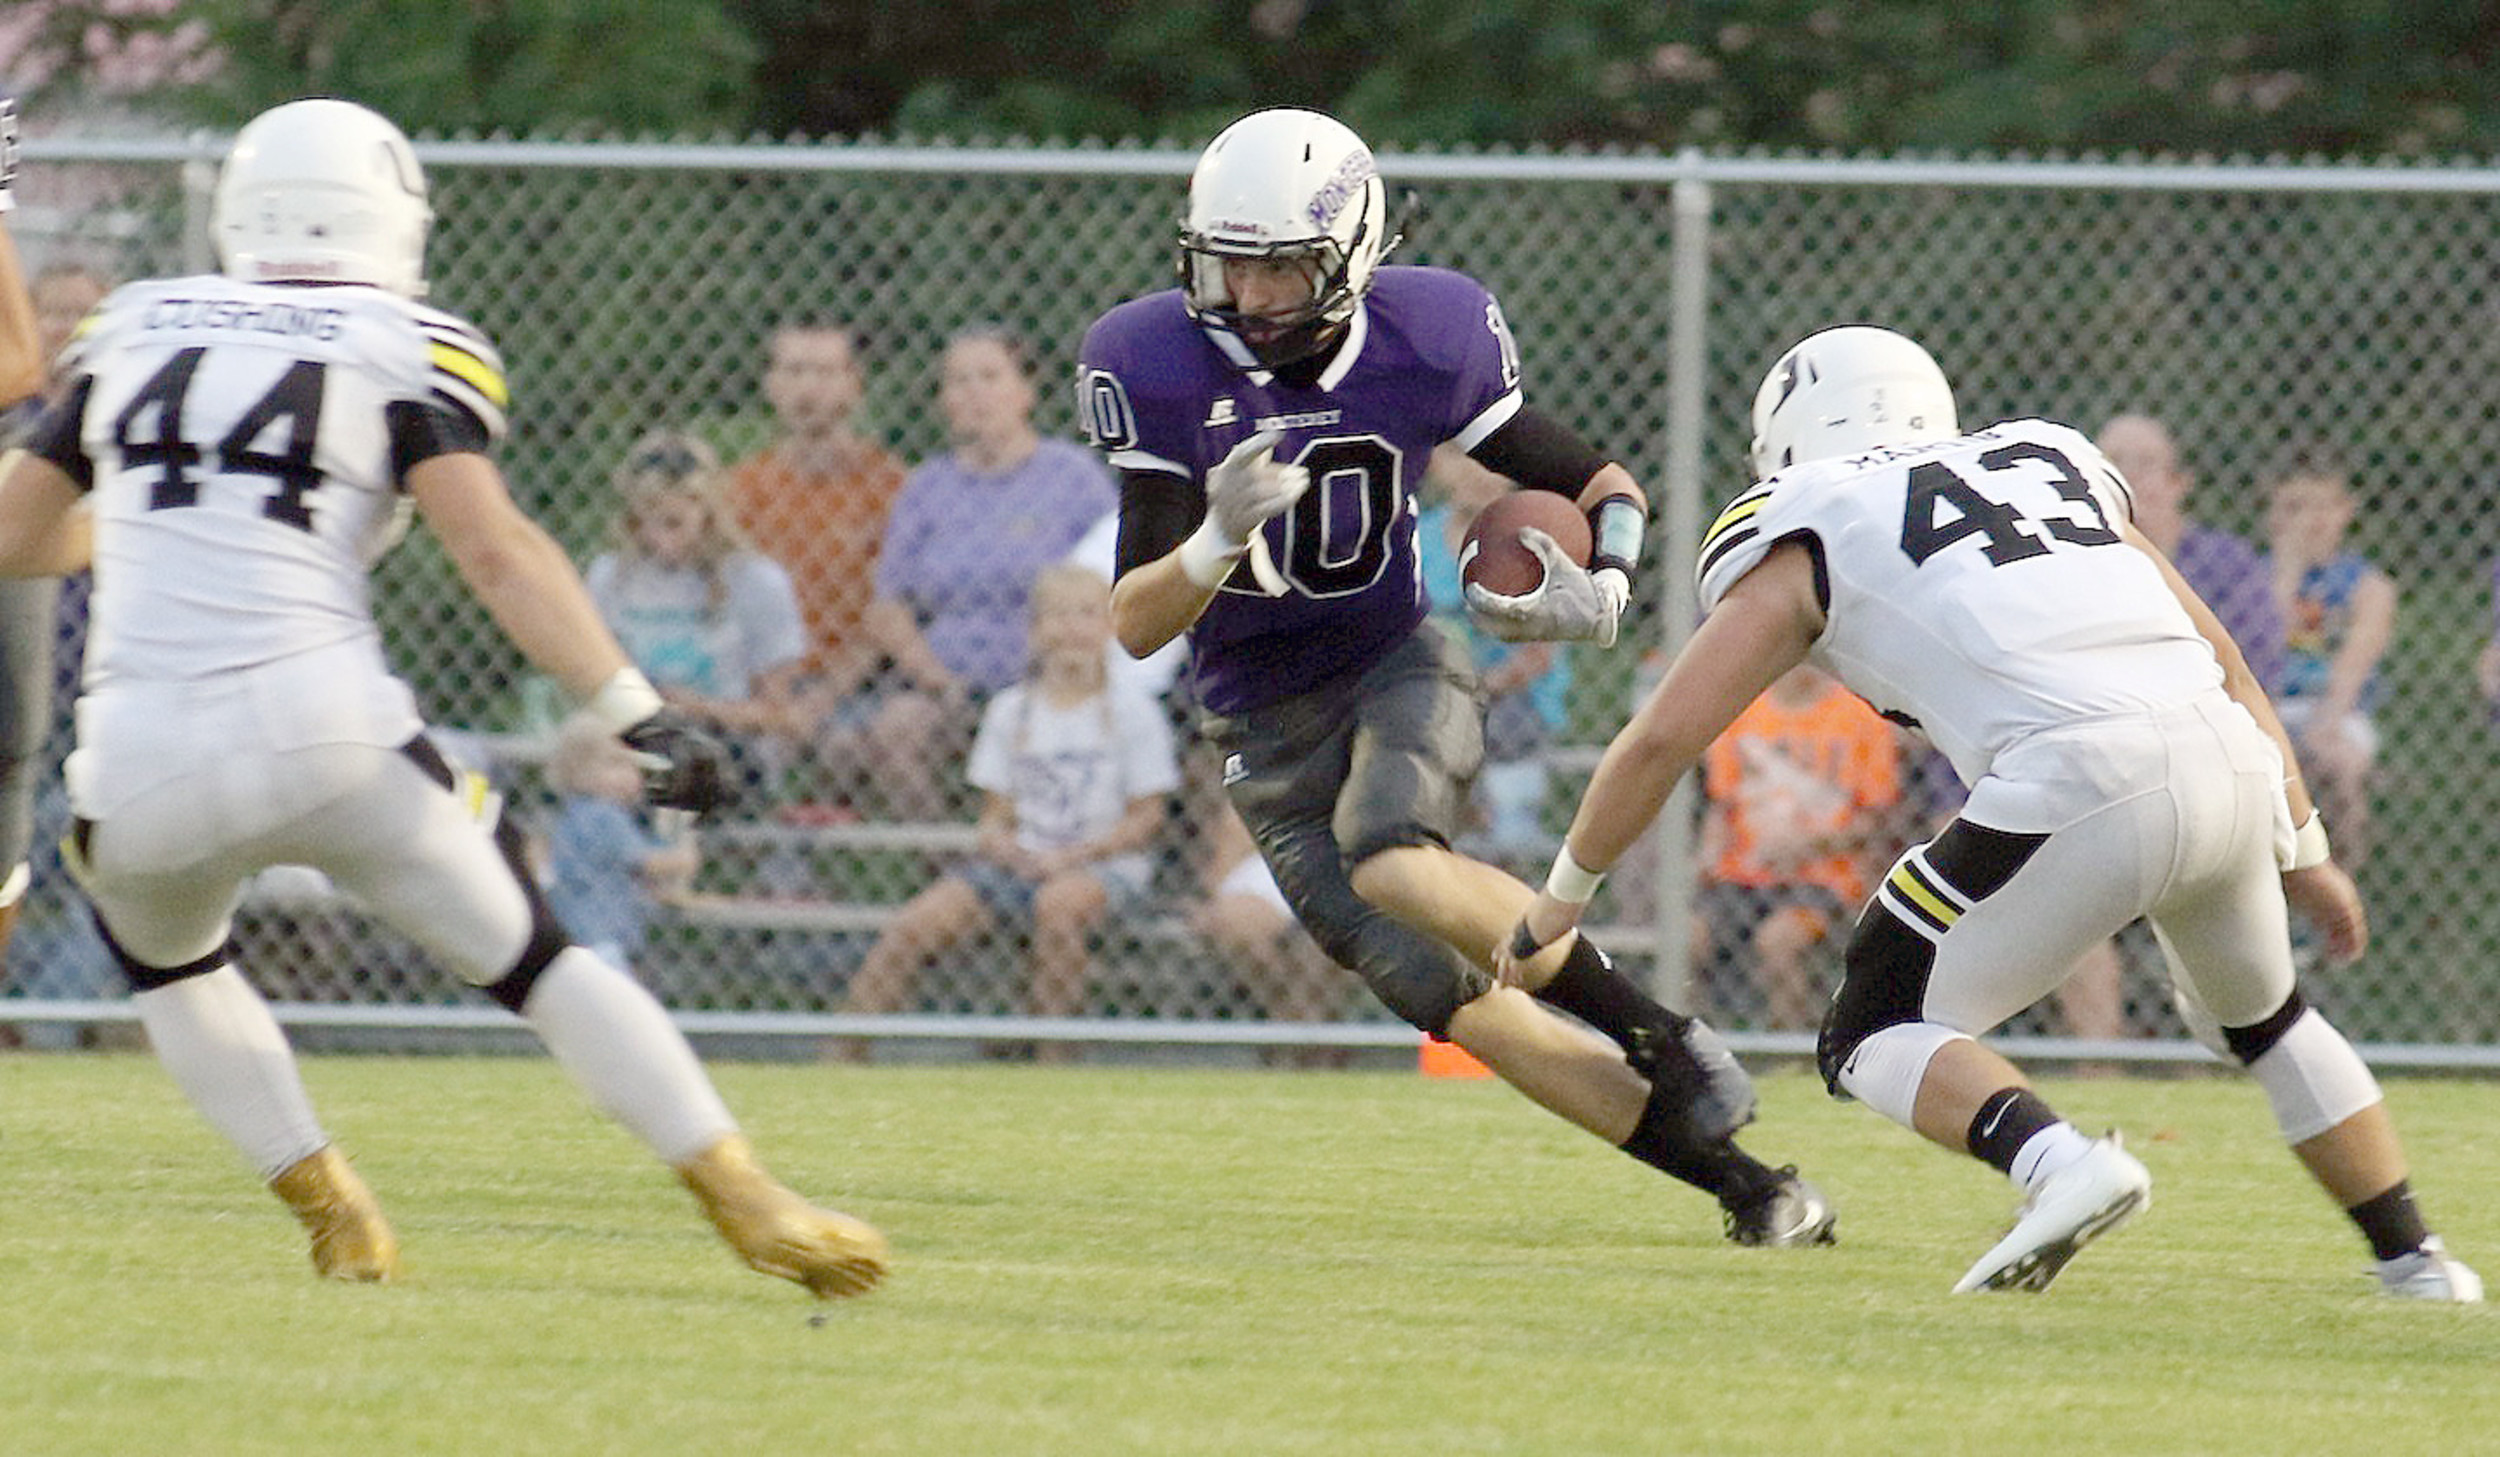 ... cut during the Wildcats' 26-0 loss to Upperman last Friday at MHS